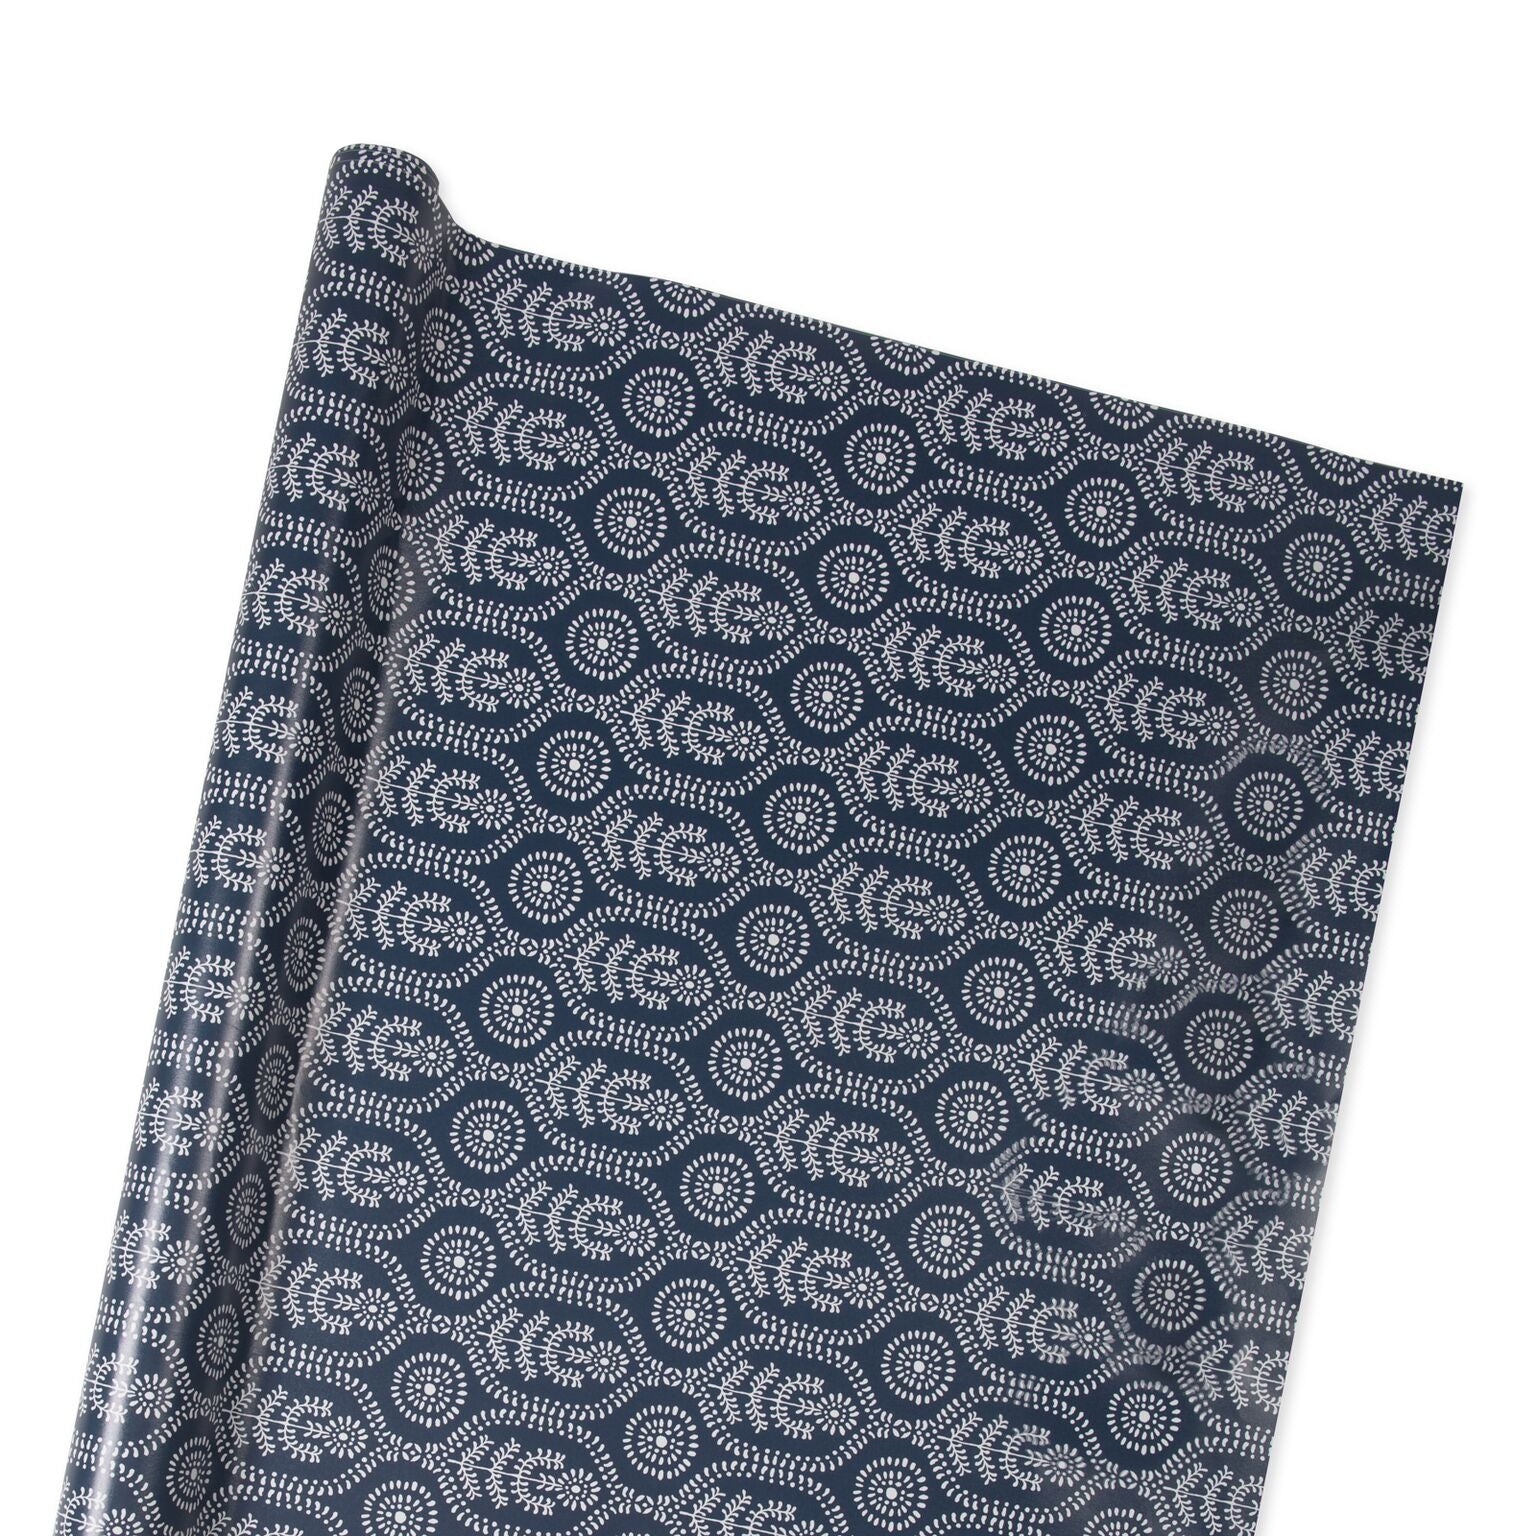 Ella Wrapping Paper in Midnight Blue